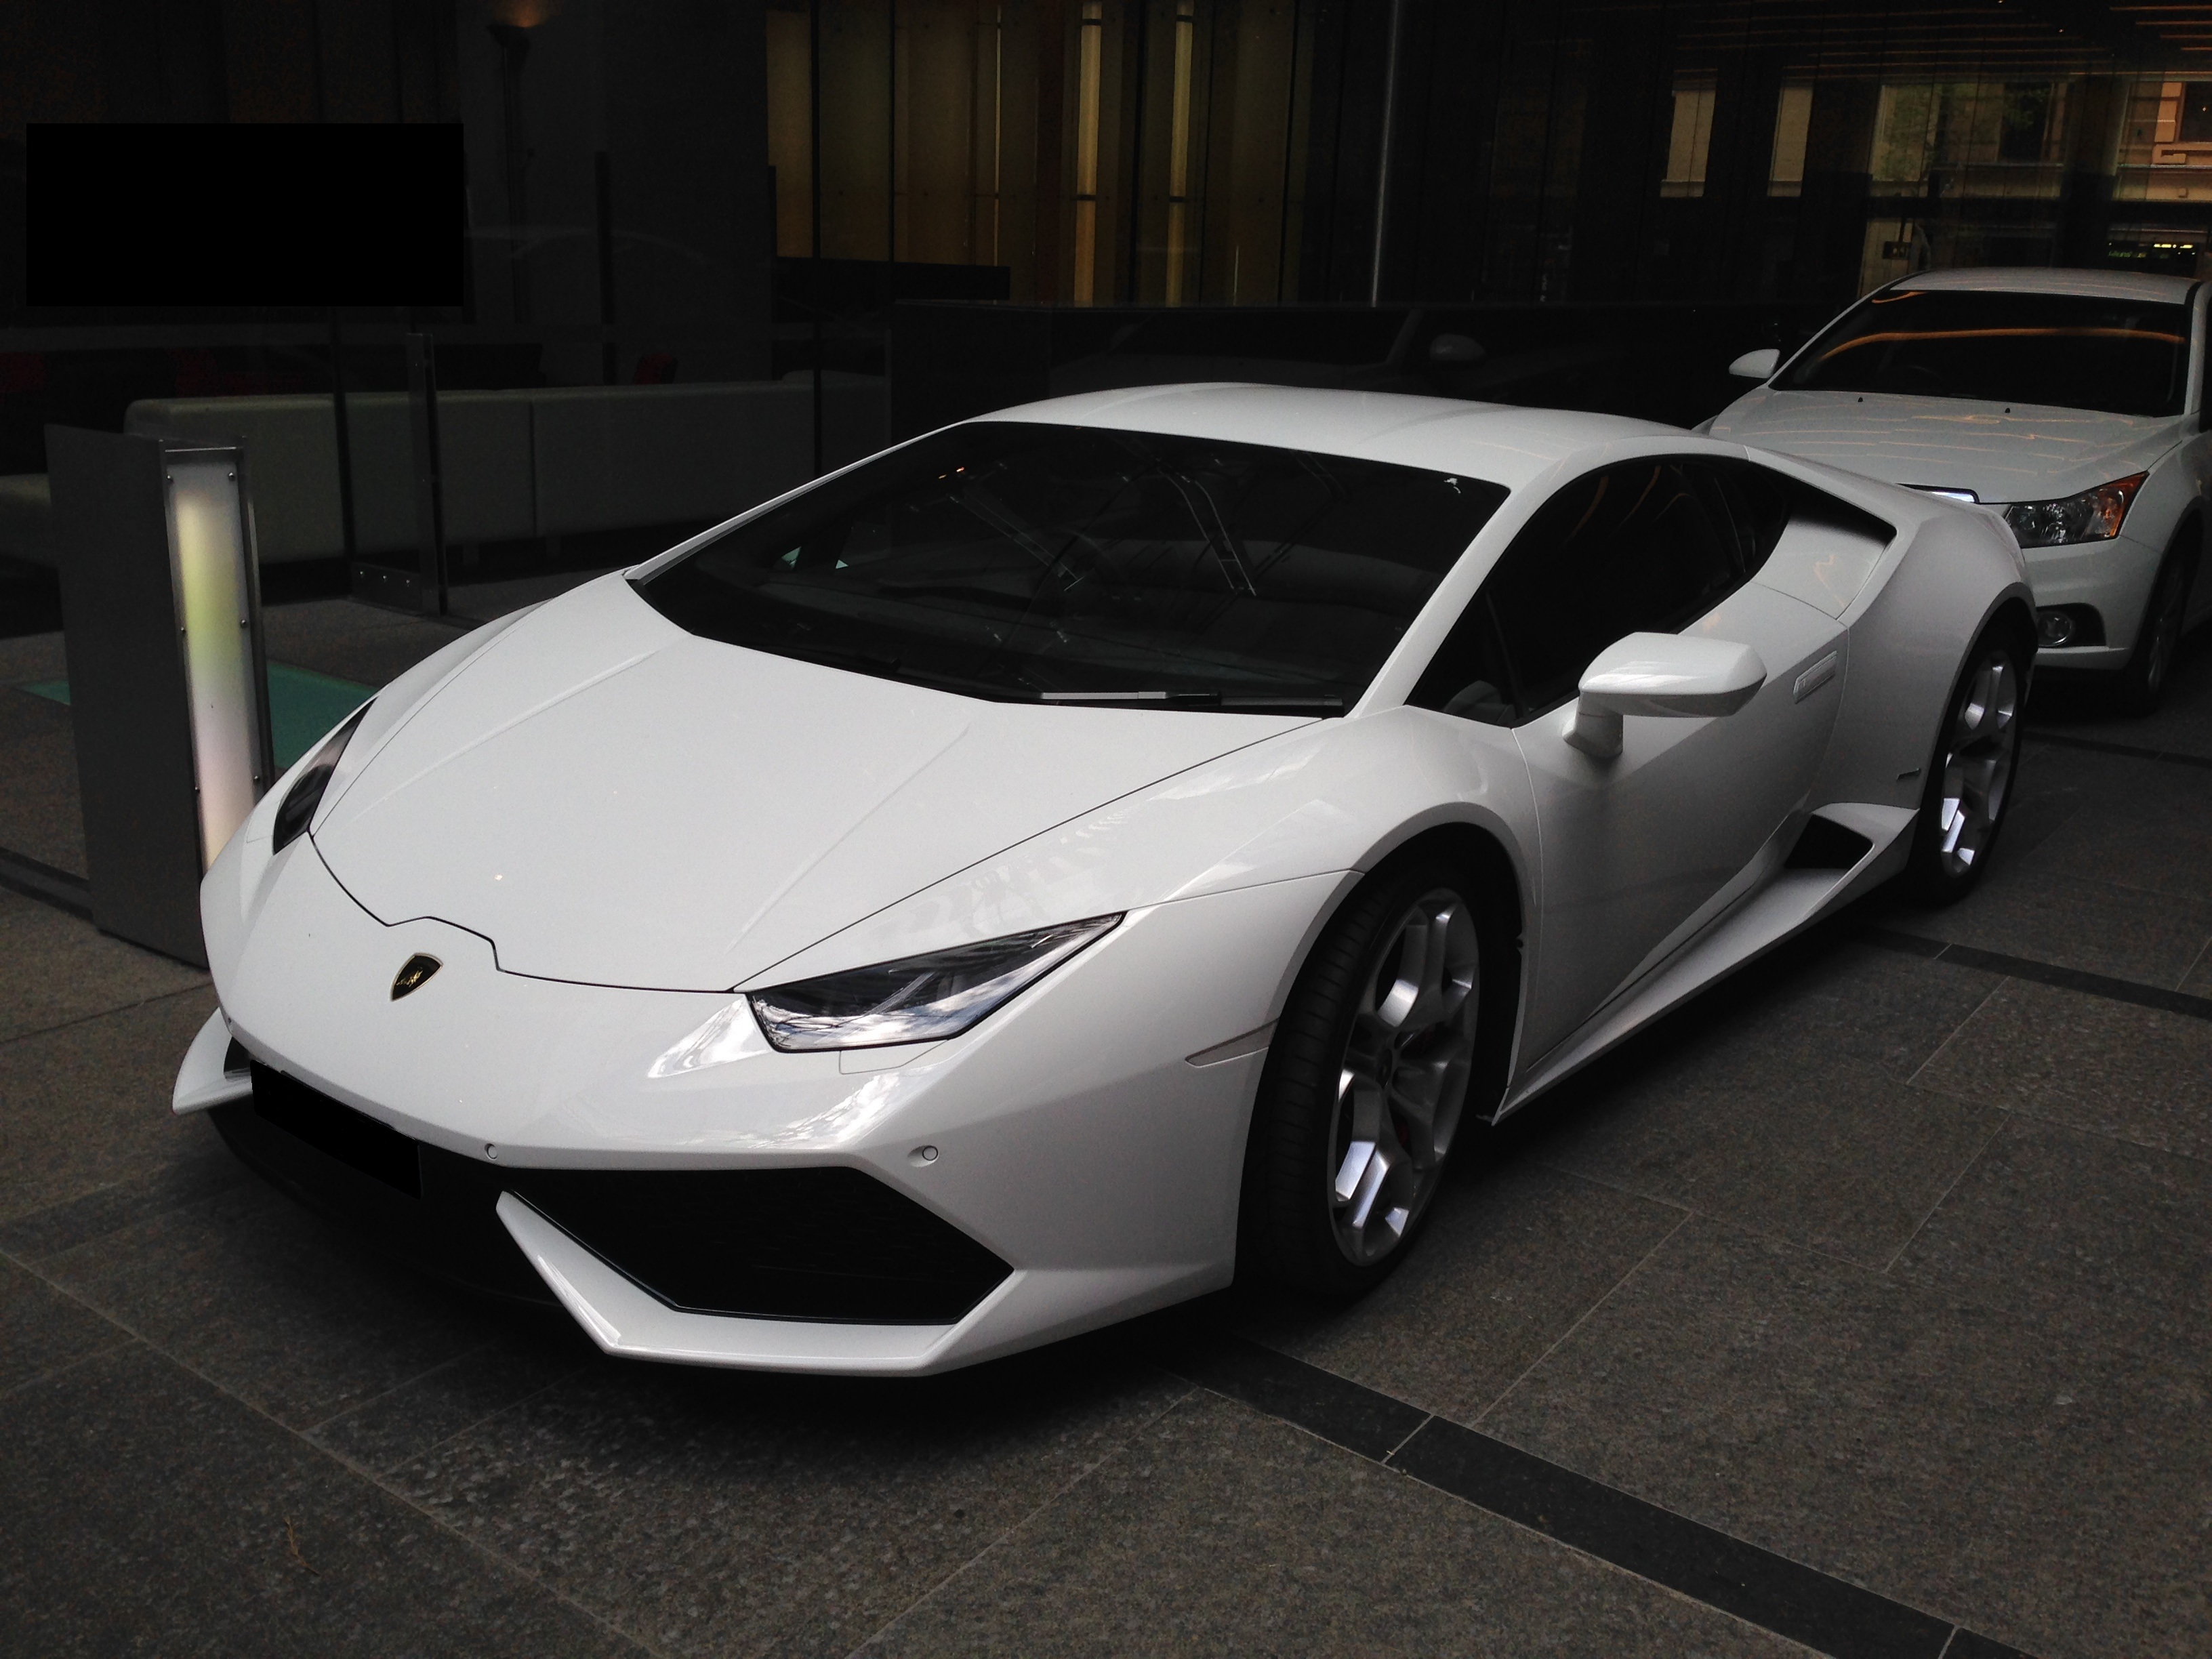 white lamborghini huracan lp - photo #1